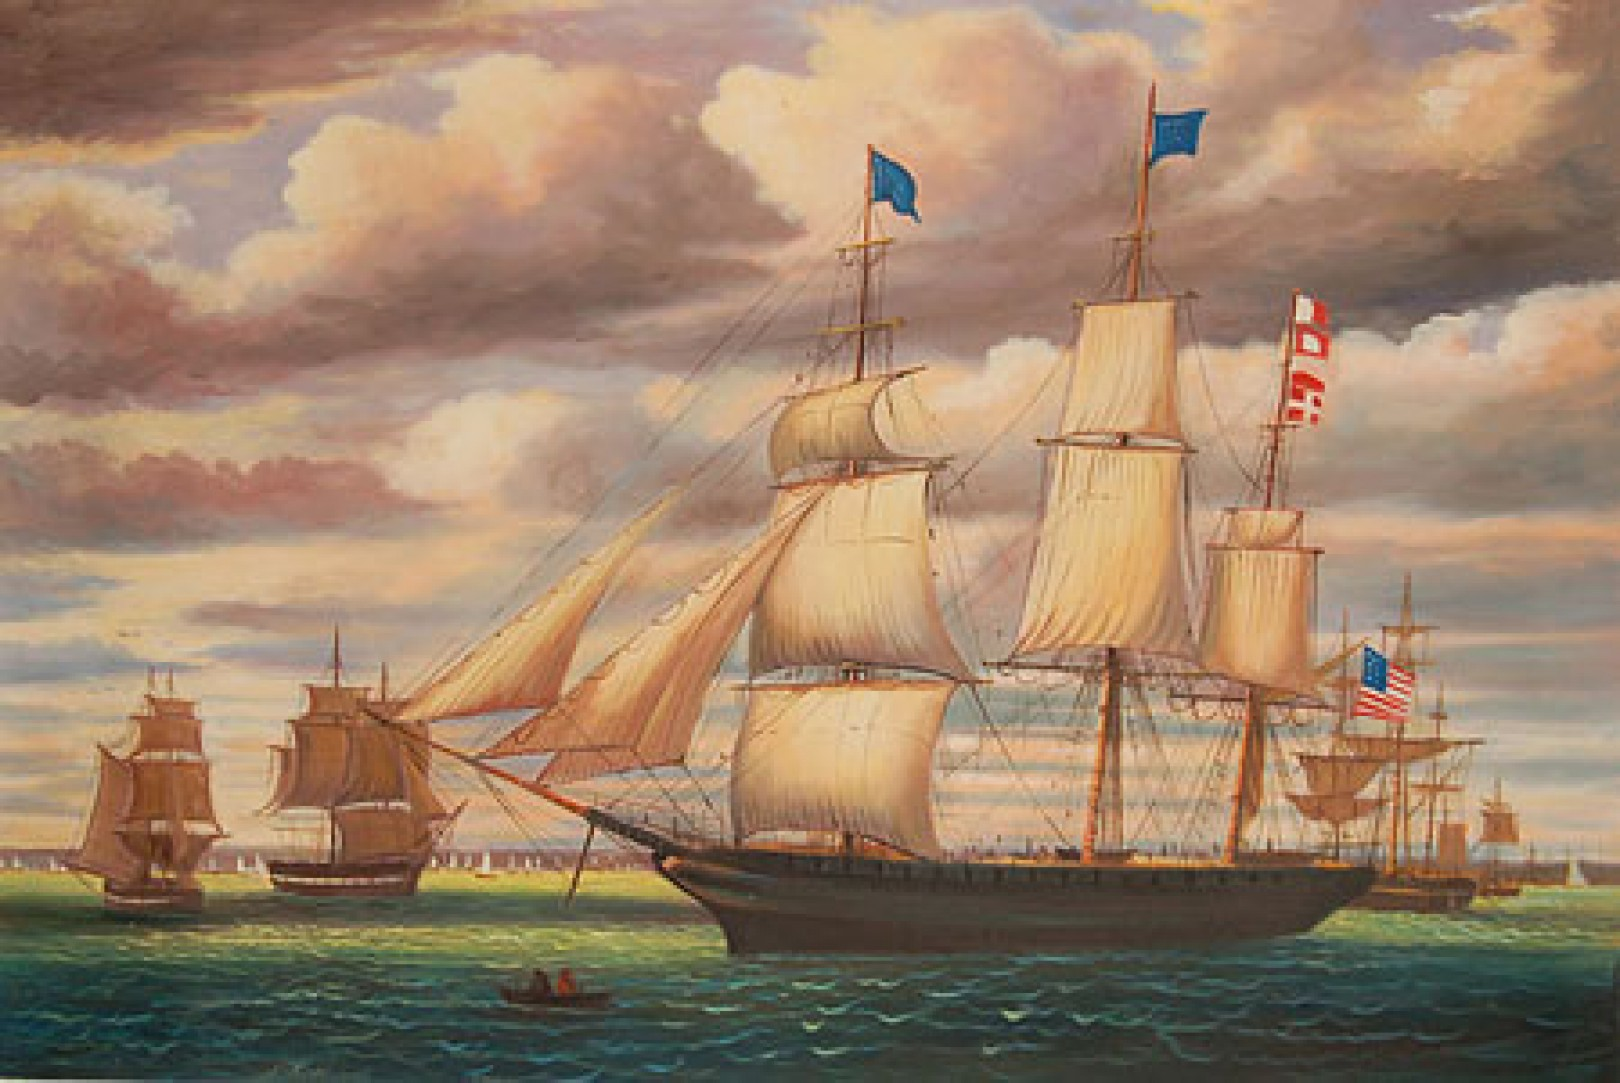 Clipper ship southern cross leaving boston harbor